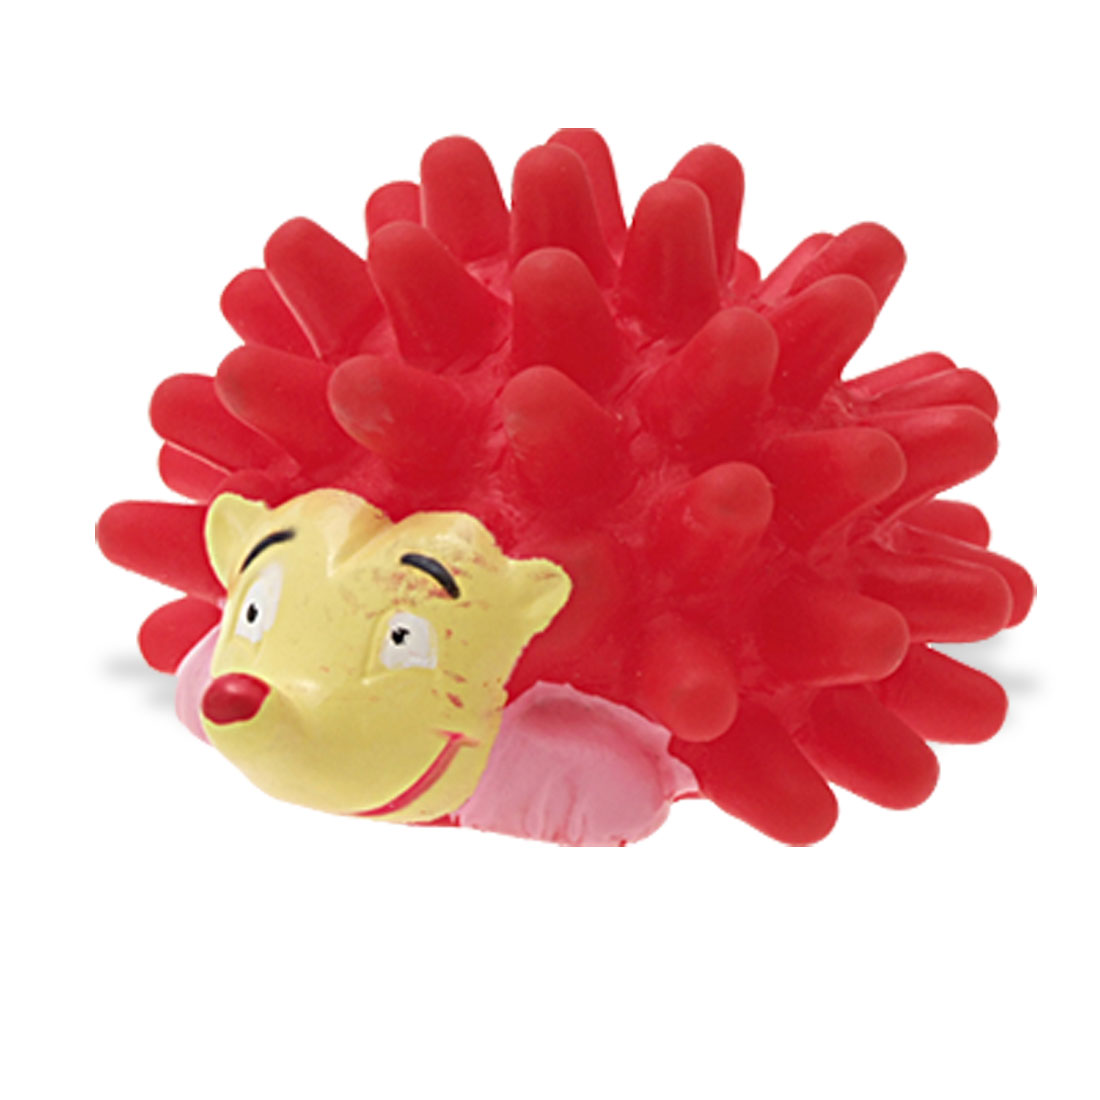 Squeaker Red Vinyl Hedgehog Pattern Pet Dog & Cat Toy